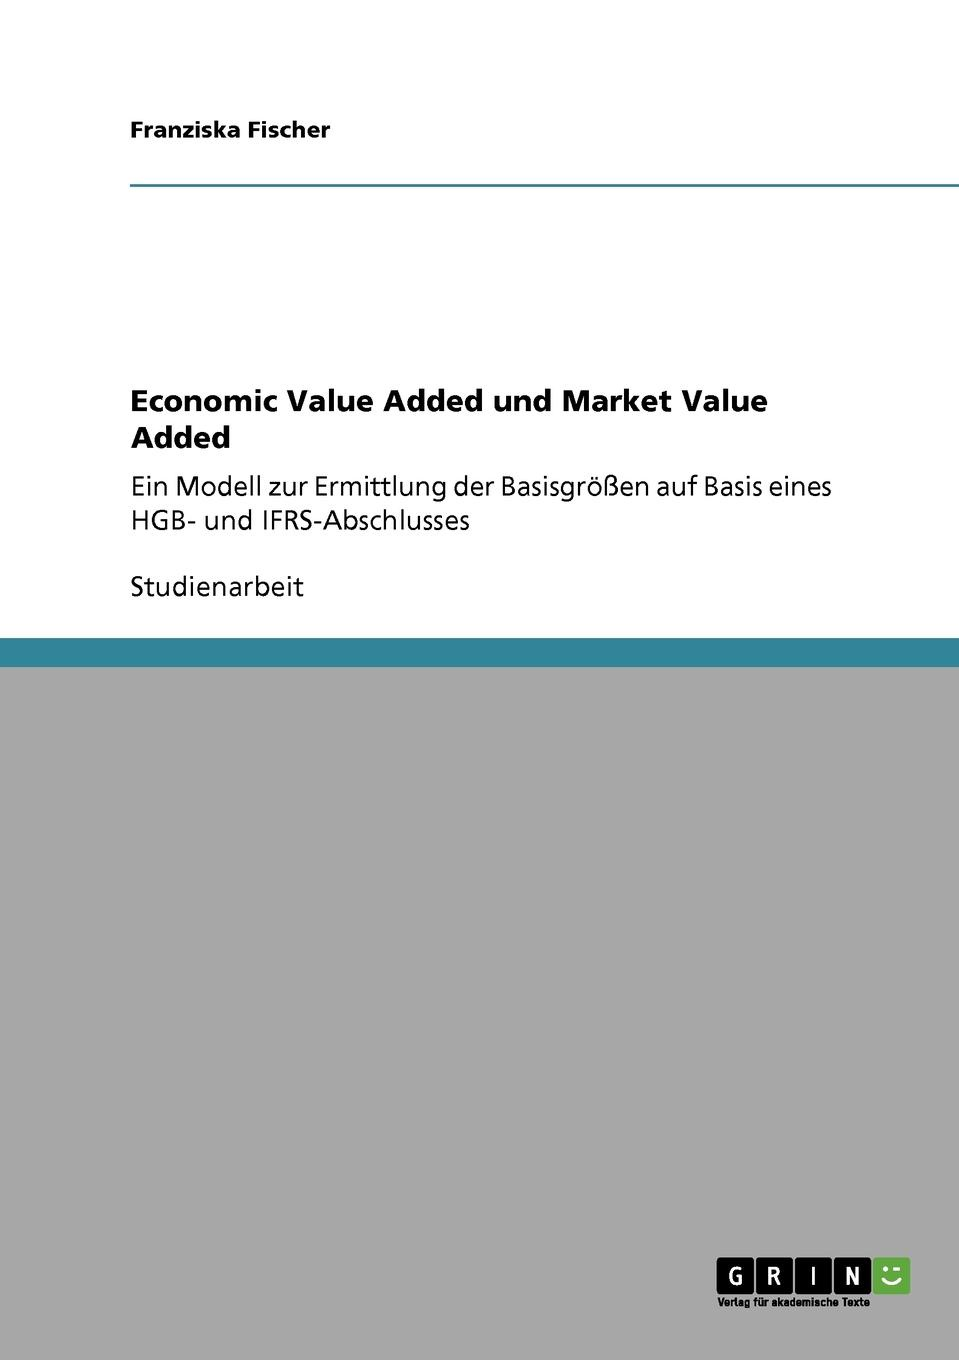 Franziska Fischer Economic Value Added und Market Value Added bruce berman making innovation pay people who turn ip into shareholder value